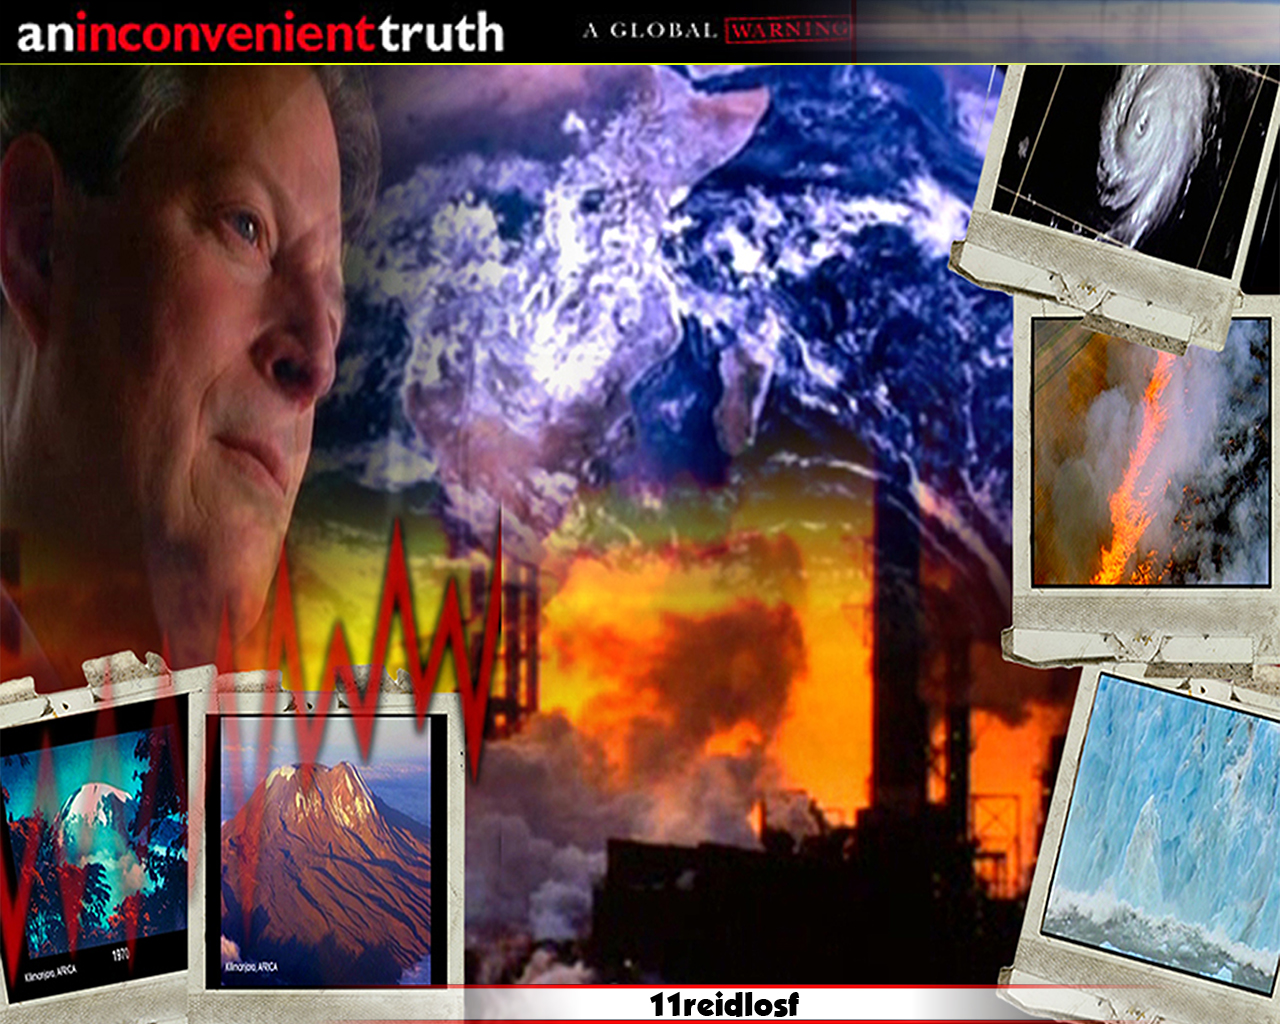 an inconvenient truth movie An inconvenient truth is a documentary in which al gore describes the problems of climate change against the backdrop of the political climate of the time, including the hotly-debated 2000 .